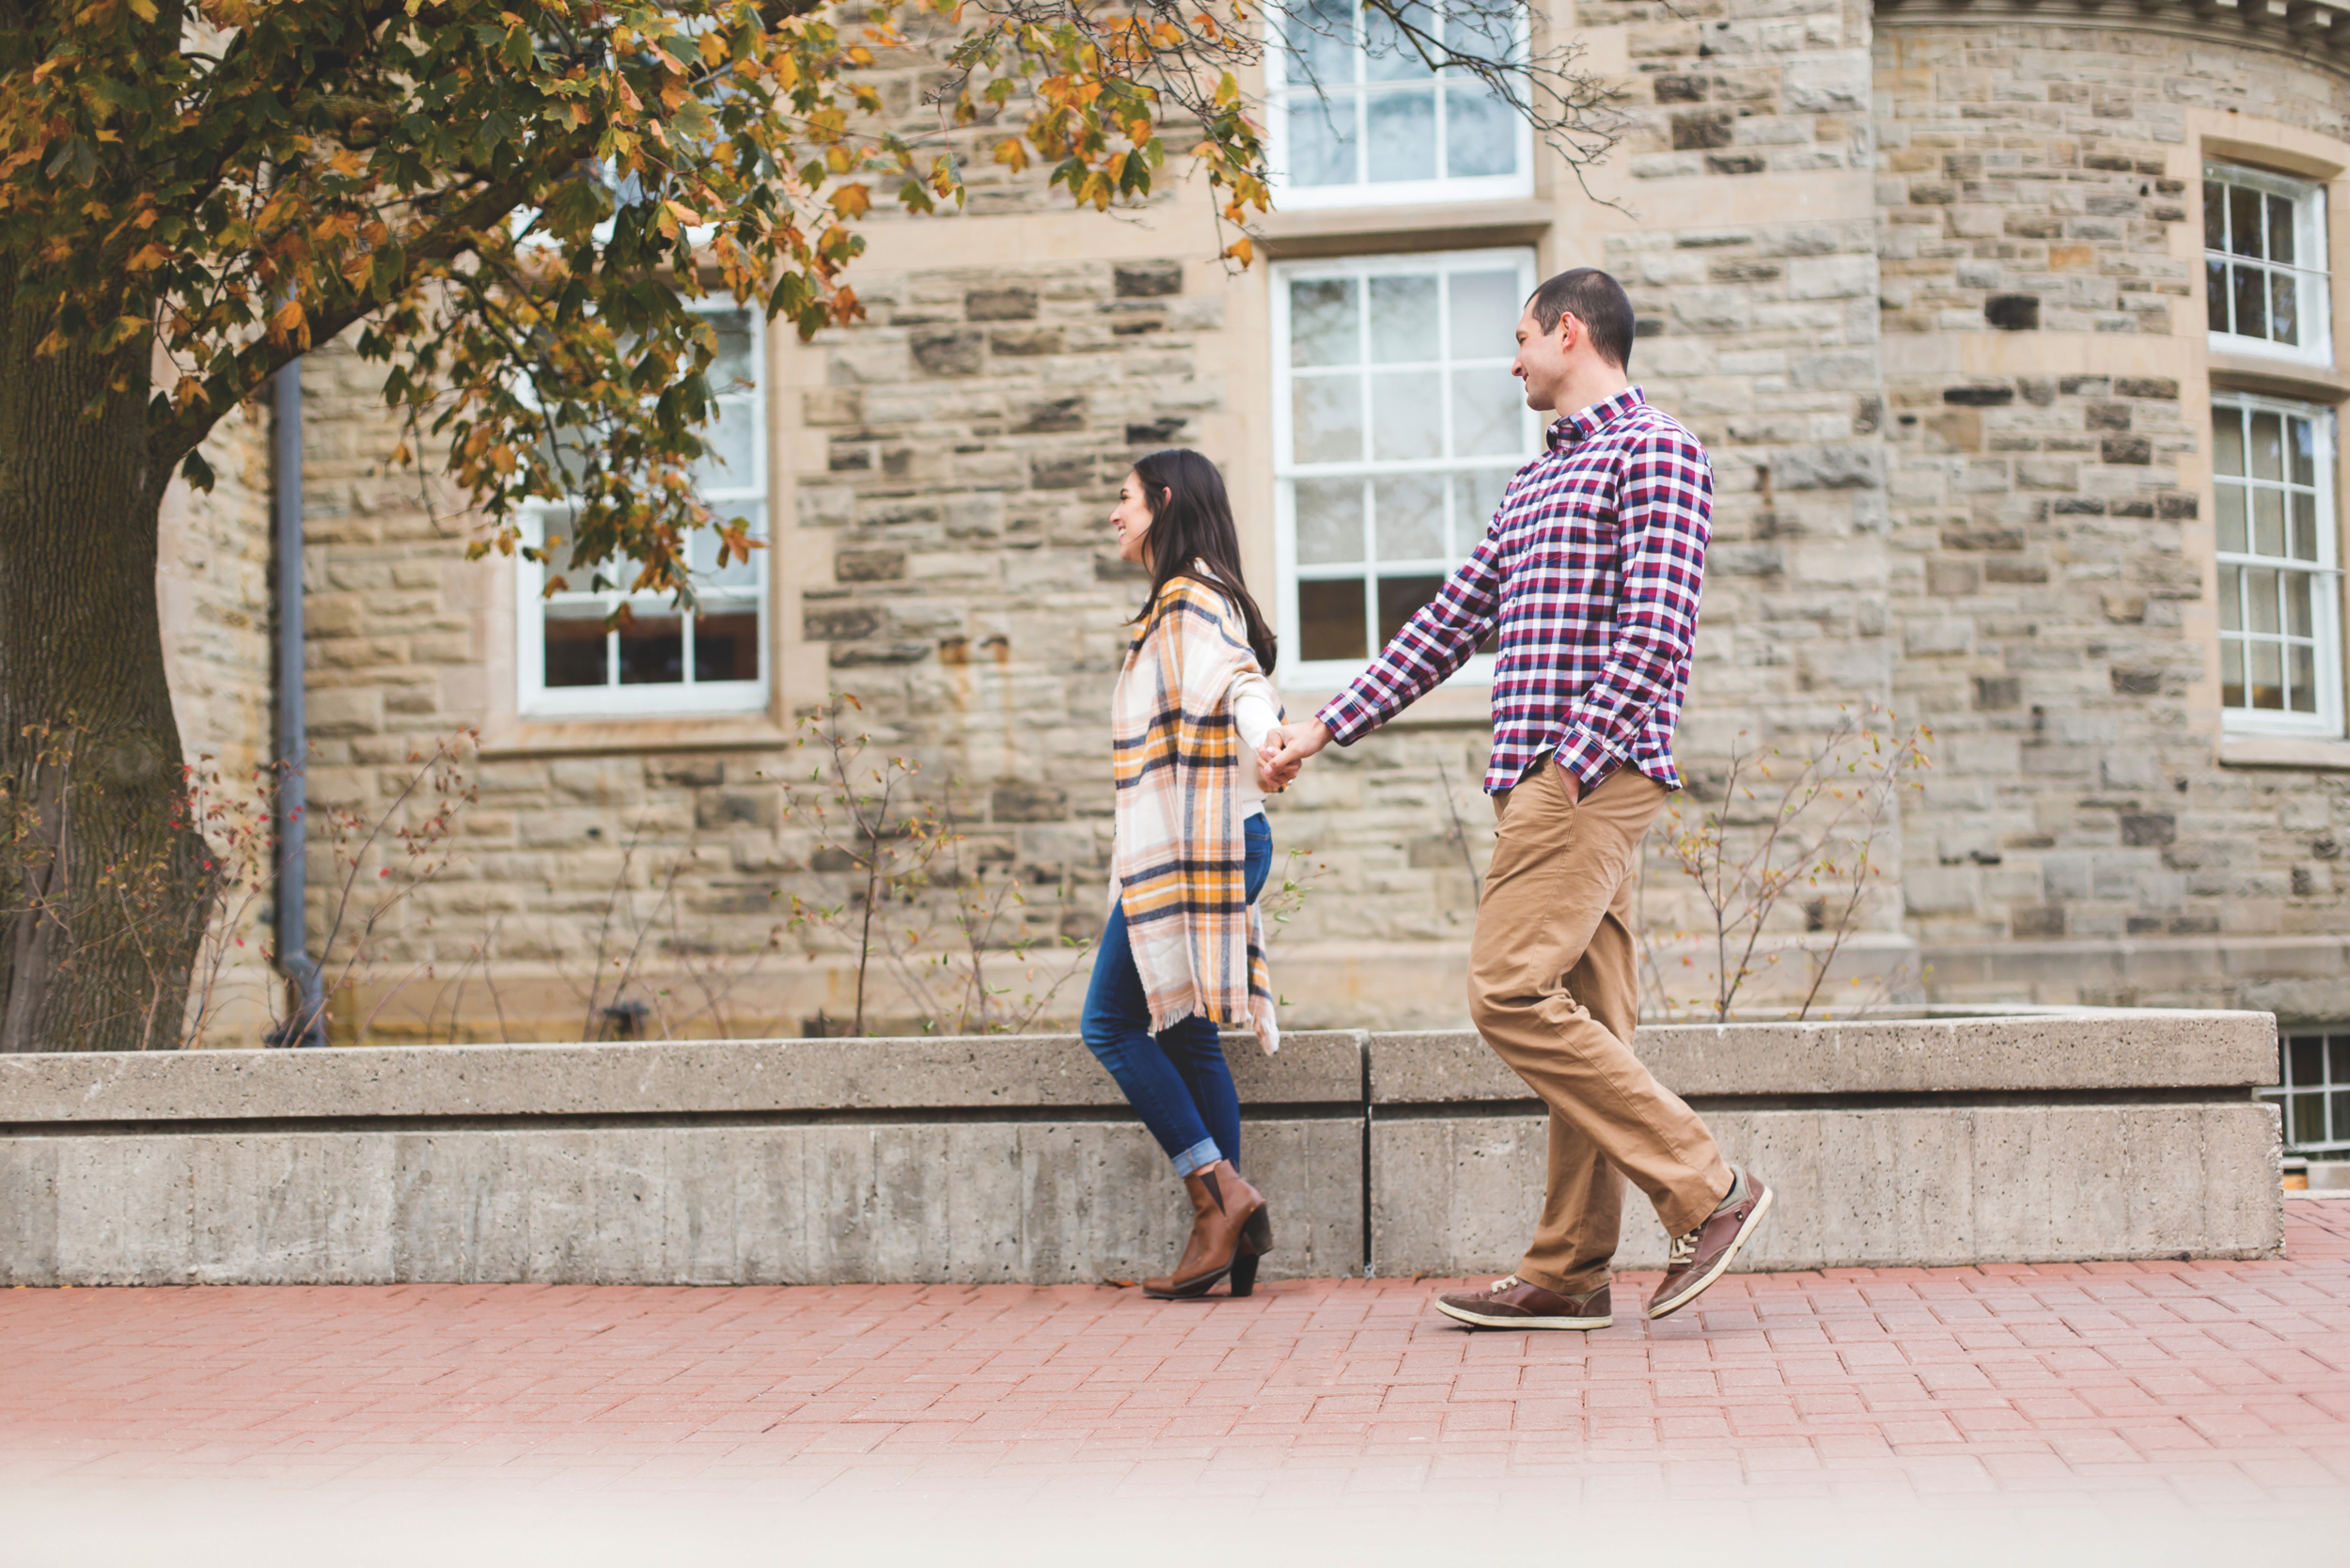 Engagement-Photography-Guelph-University-Campus-Hamilton-Burlington-Oakville-Niagara-Toronto-Wedding-Photographer-Photo-Image-22.png